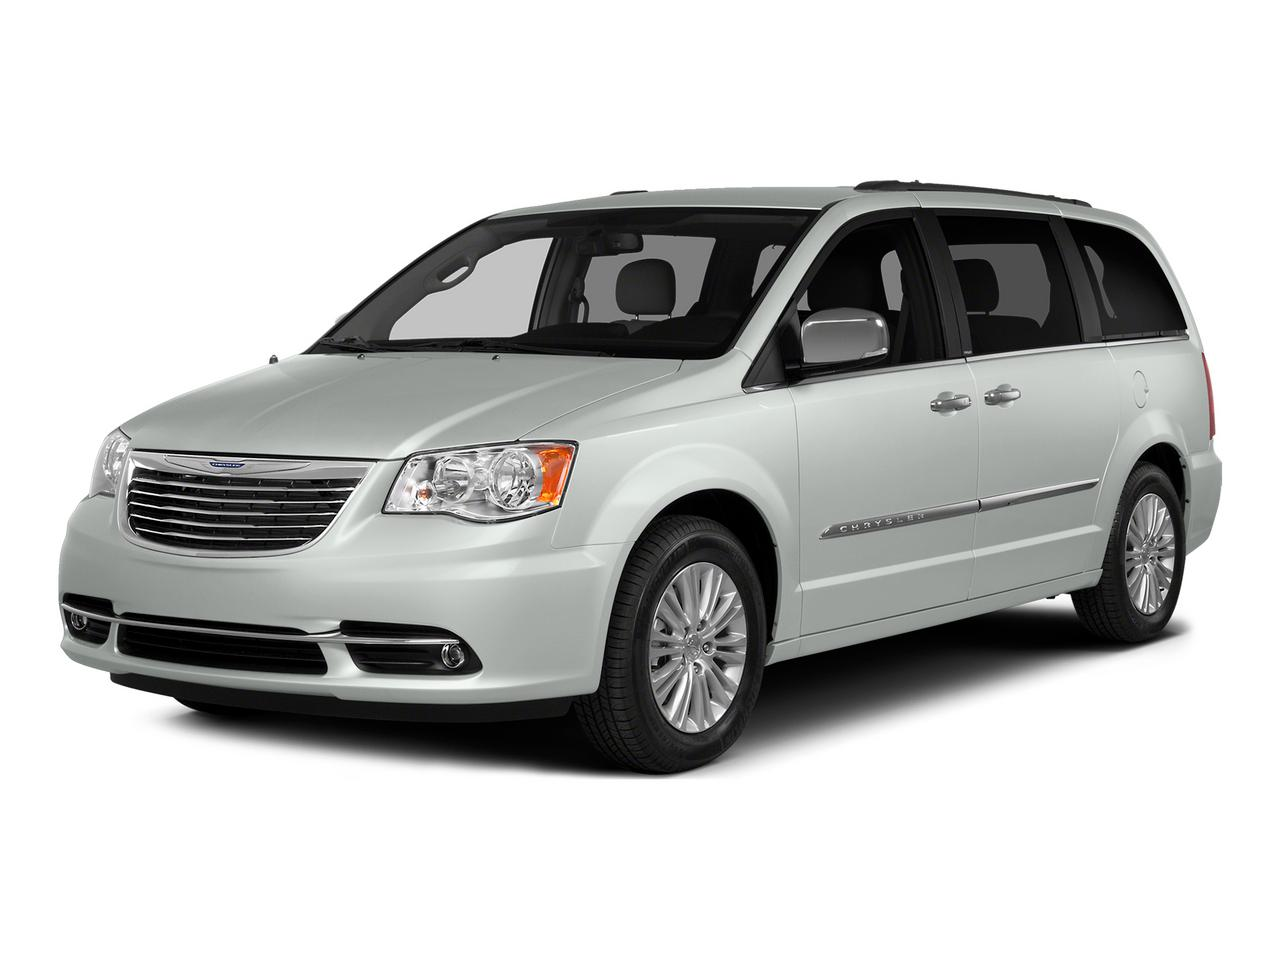 2015 Chrysler Town & Country Vehicle Photo in Tulsa, OK 74133